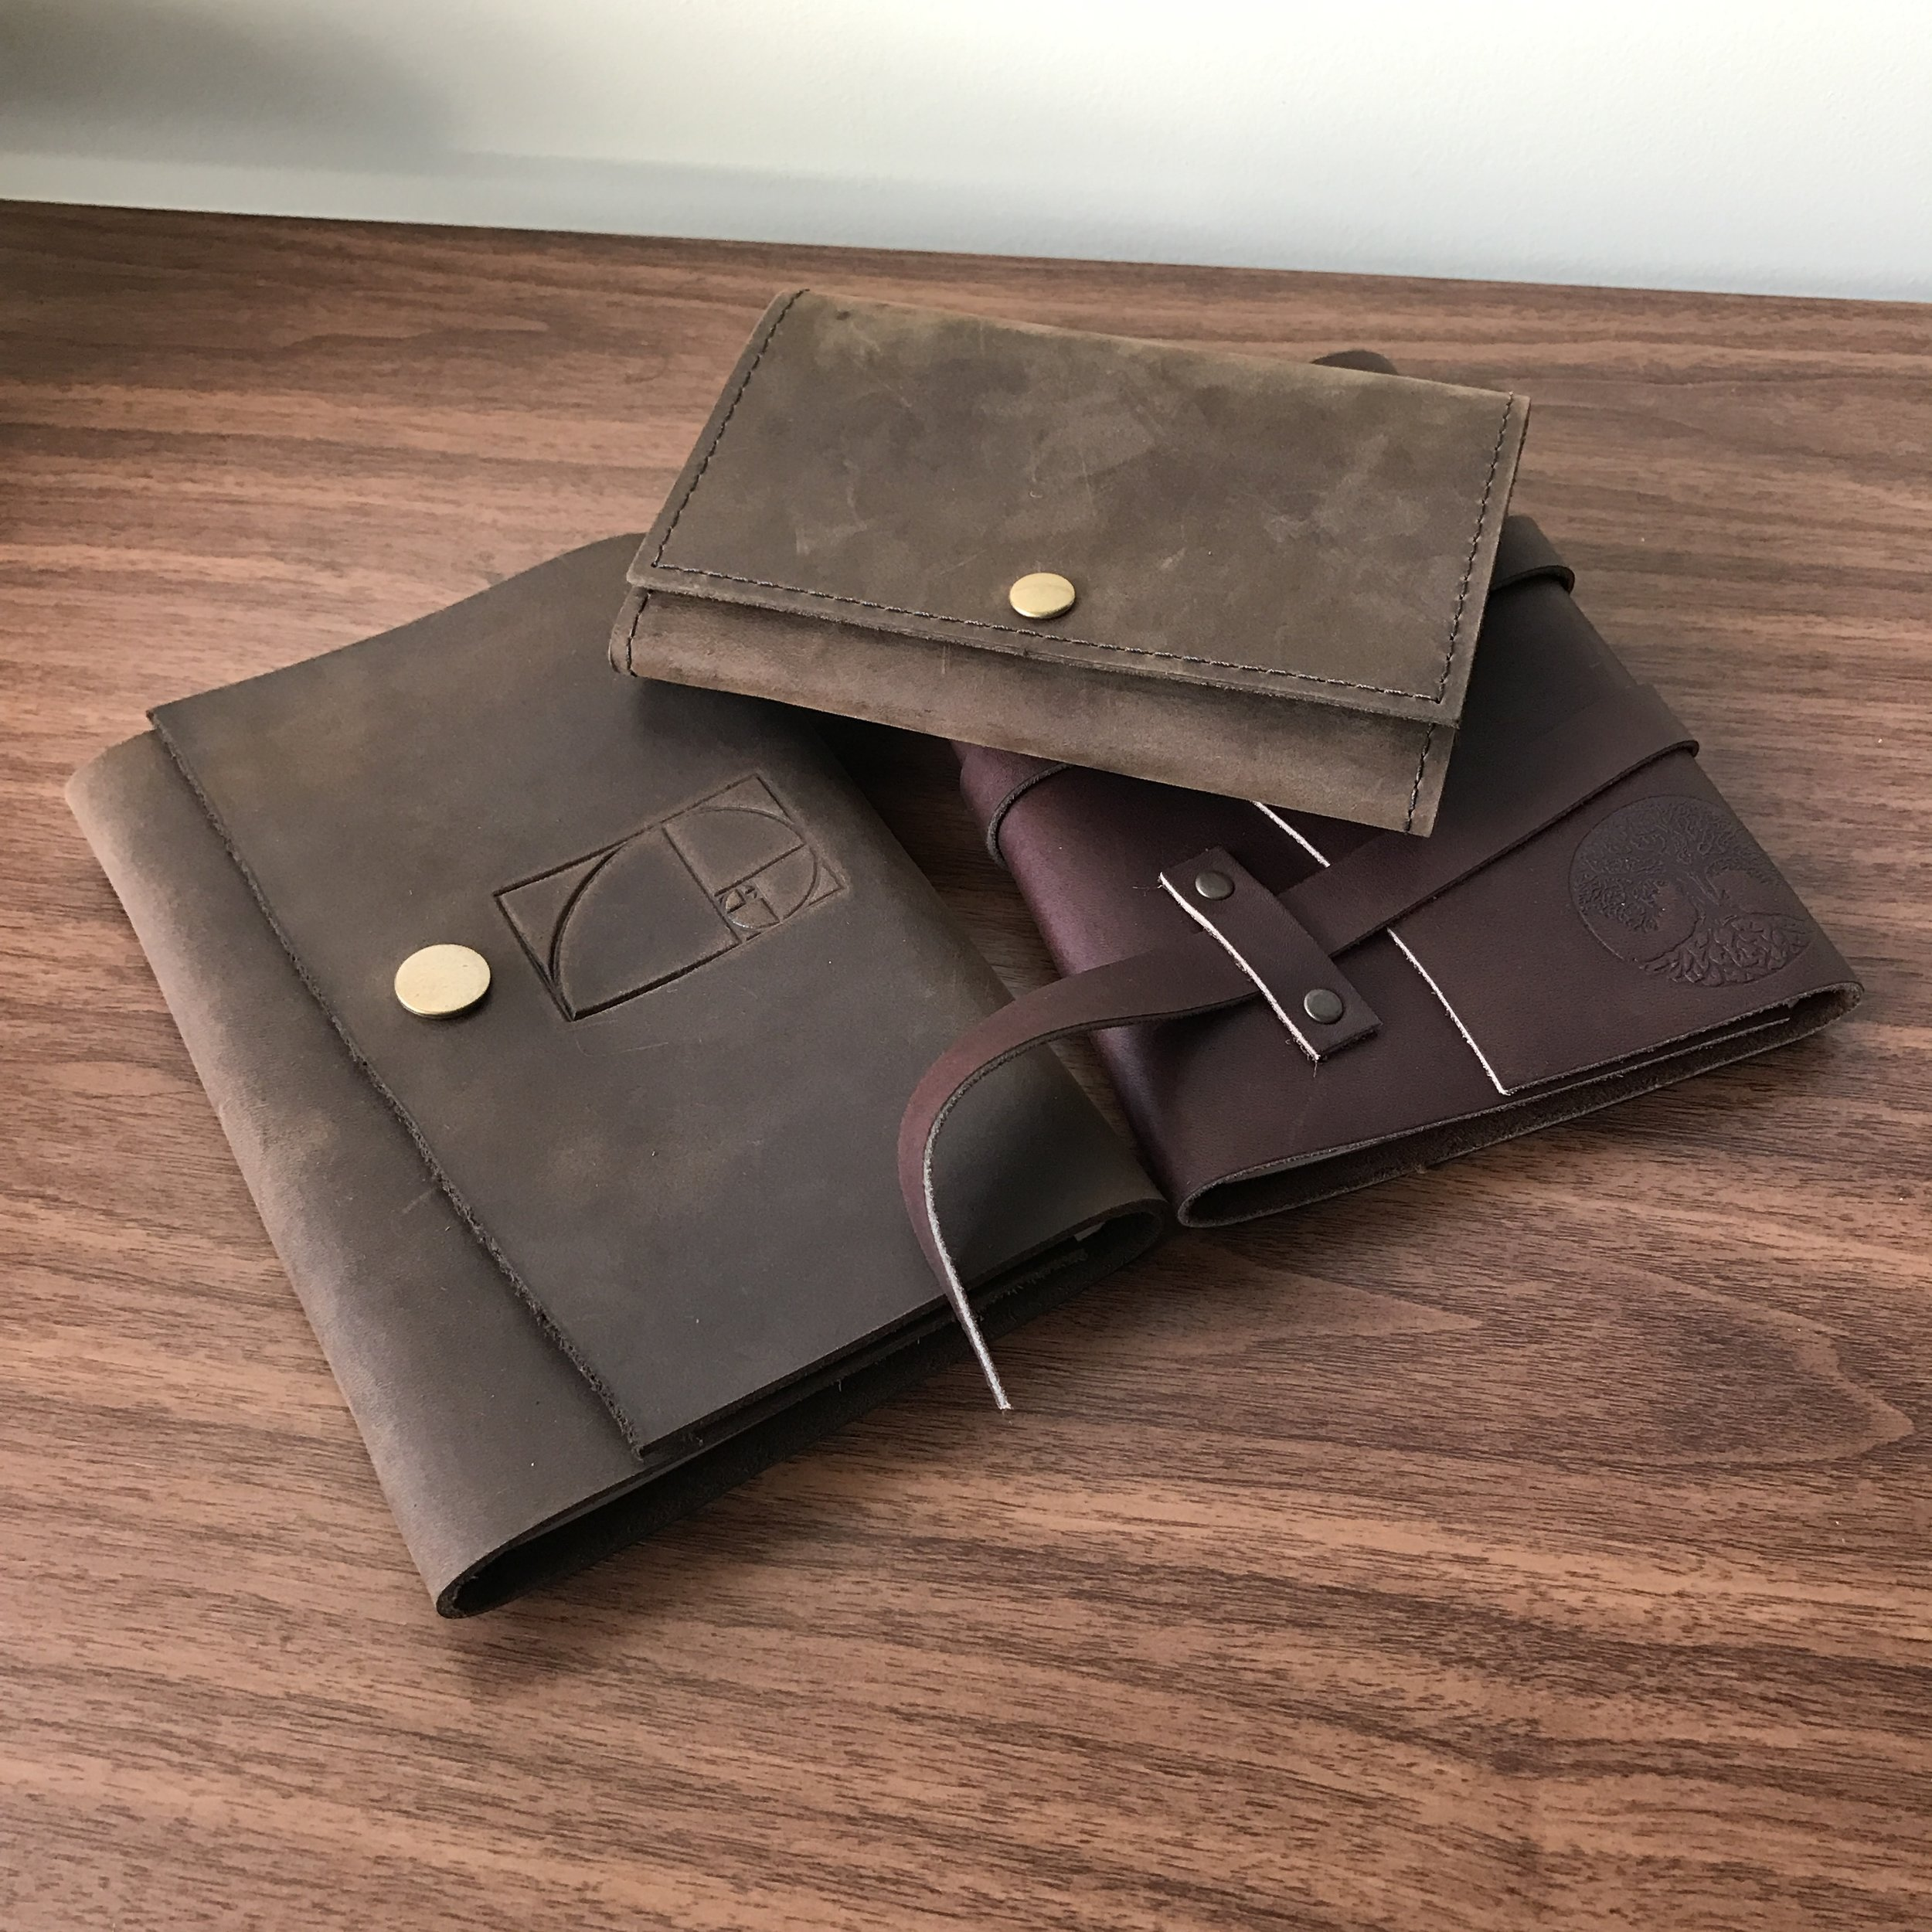 """From left, the medium Snap journal with the """"Golden Mean"""" brand, the small Snap journal, and the Triple Wrap journal with the """"Tree of Life"""" brand."""